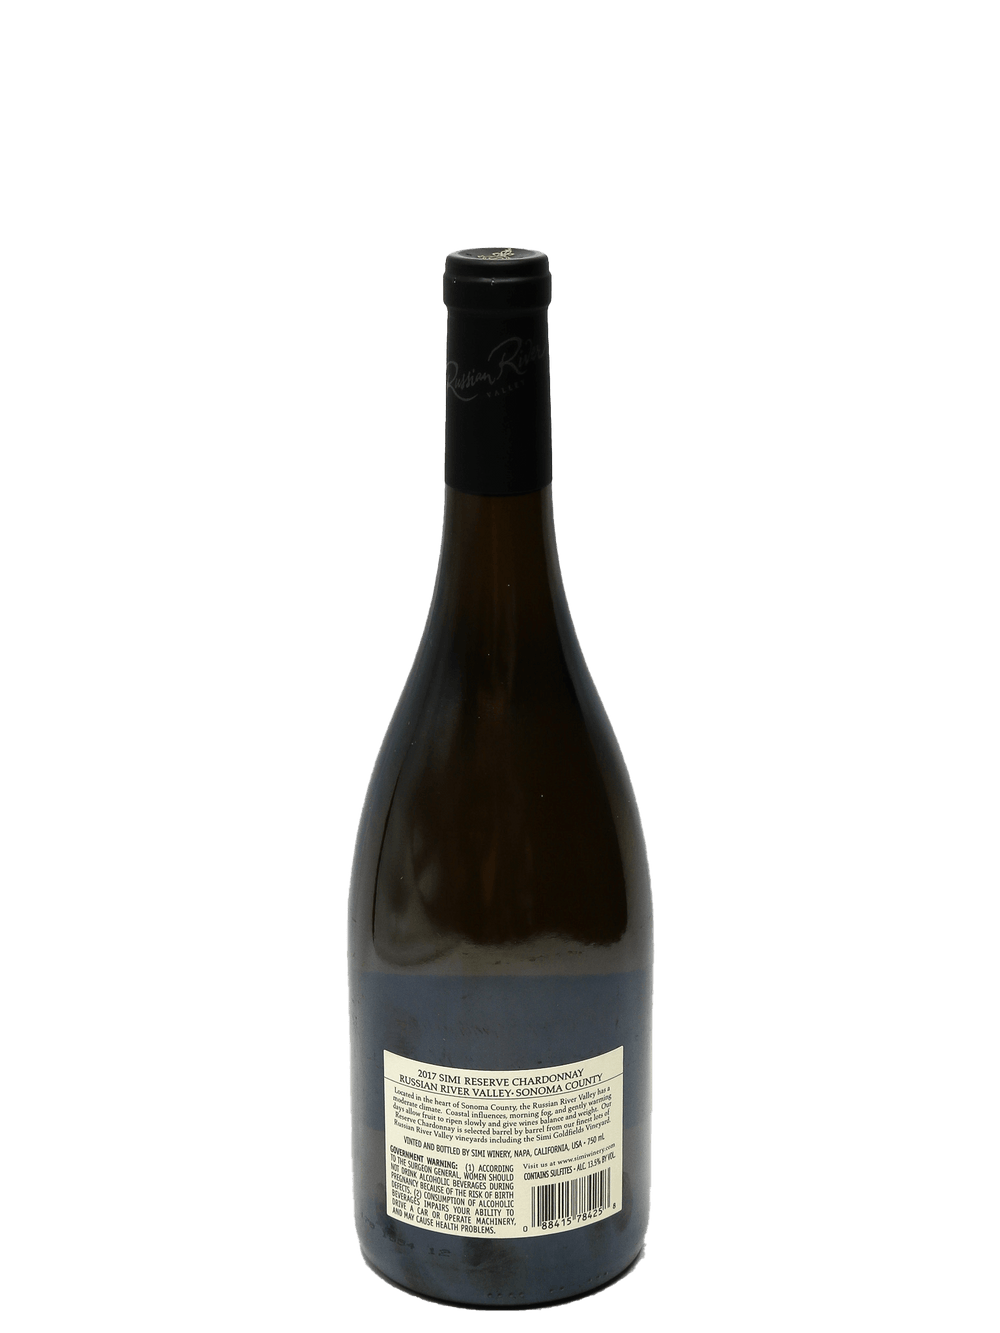 2017 Simi Reserve Chardonnay Russian River Valley